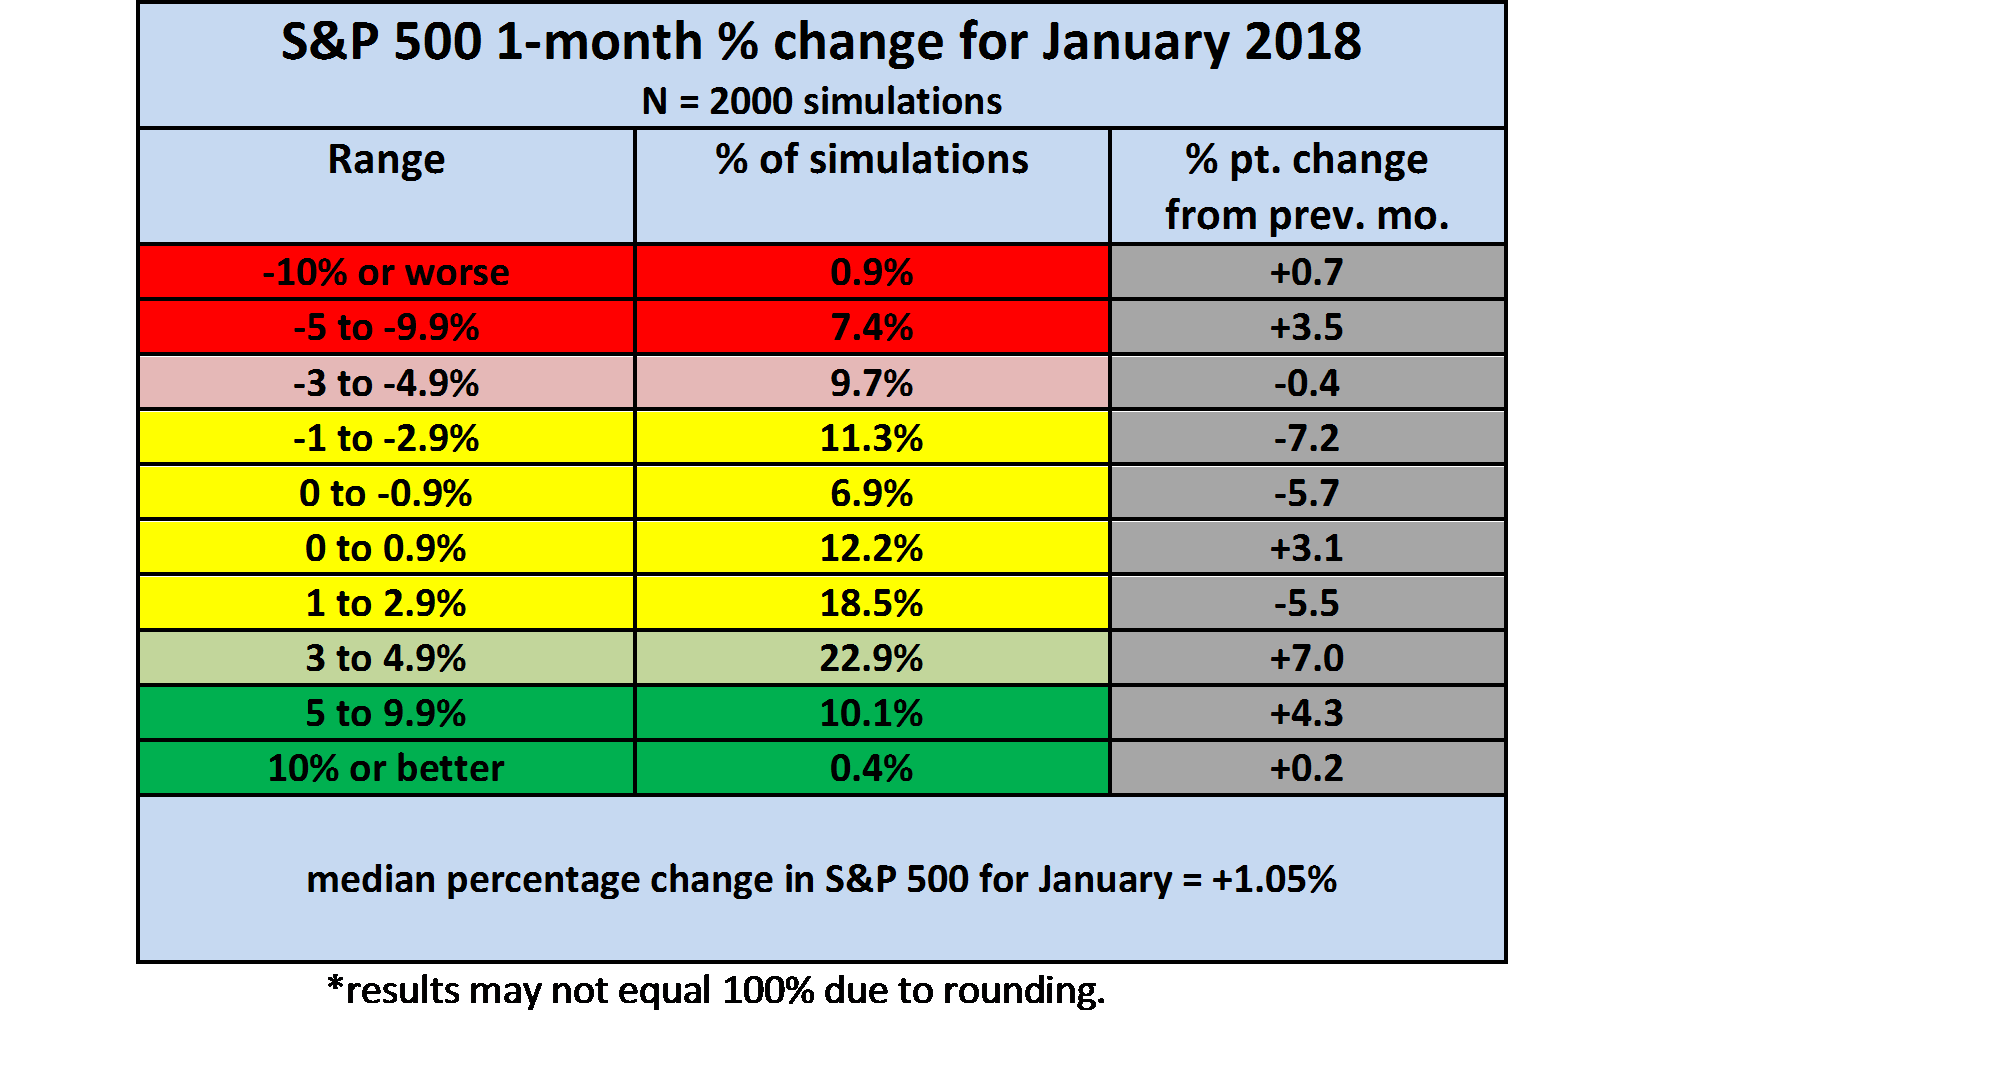 The S&P 500 In January 2018: The Odds Favor Another Positive Month